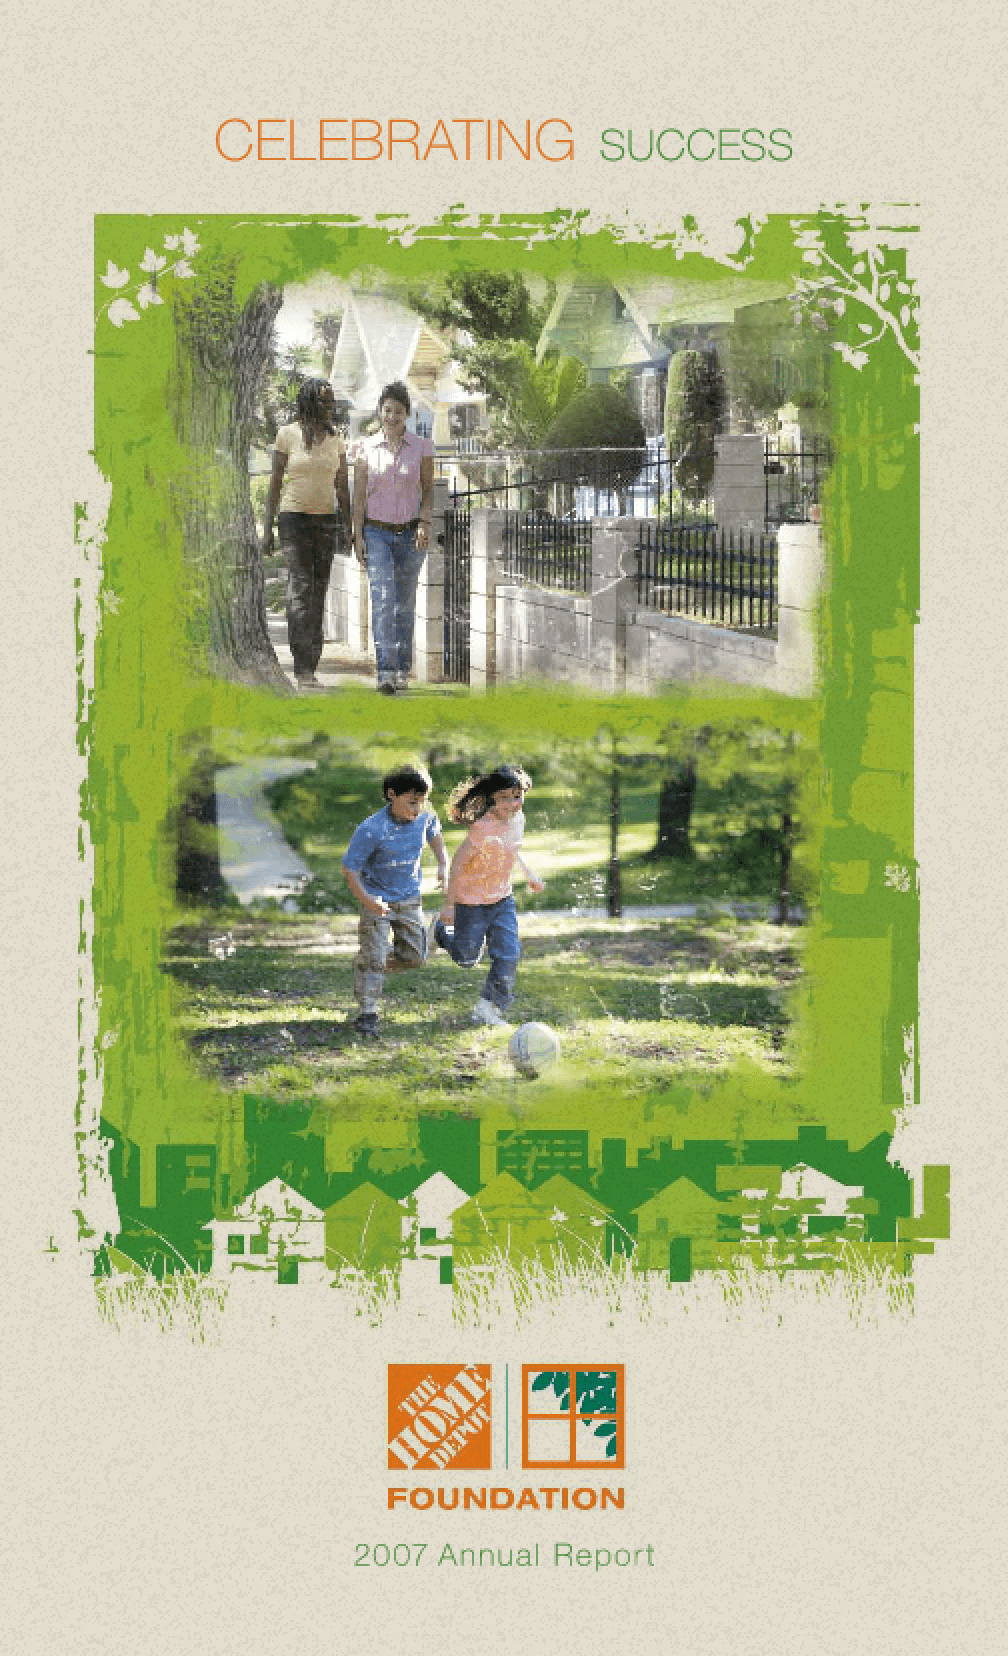 Home Depot Foundation - 2007 Annual Report